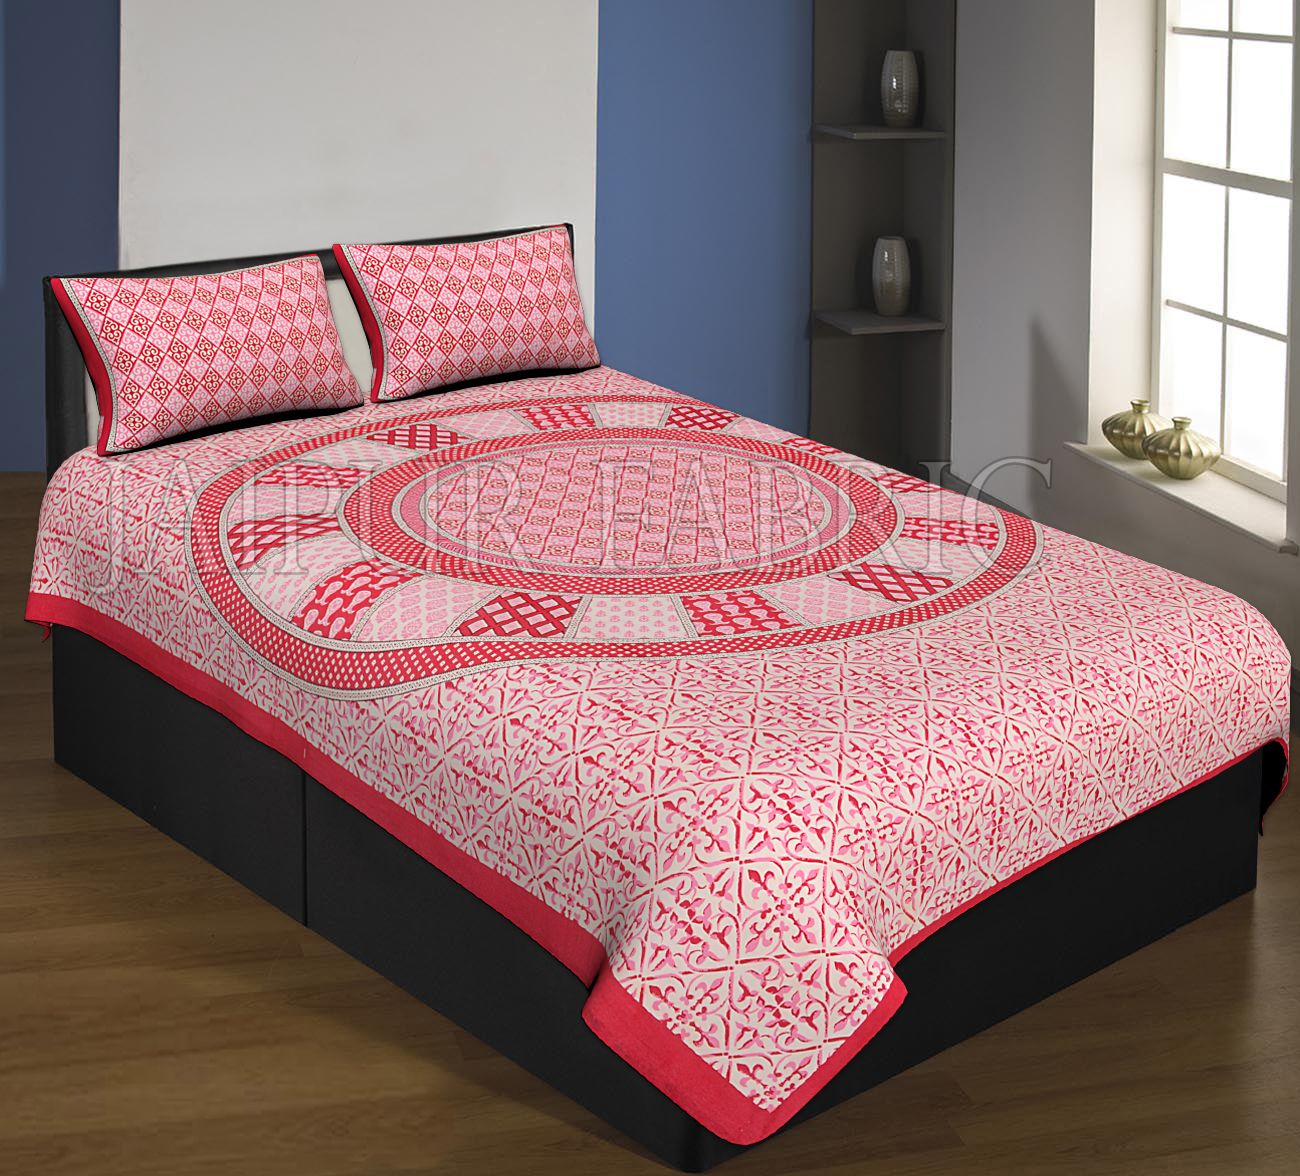 Red Boarder Cream Base Circle Design With Leaf Pattern Single Bed Sheet With 2 Pillow Cover